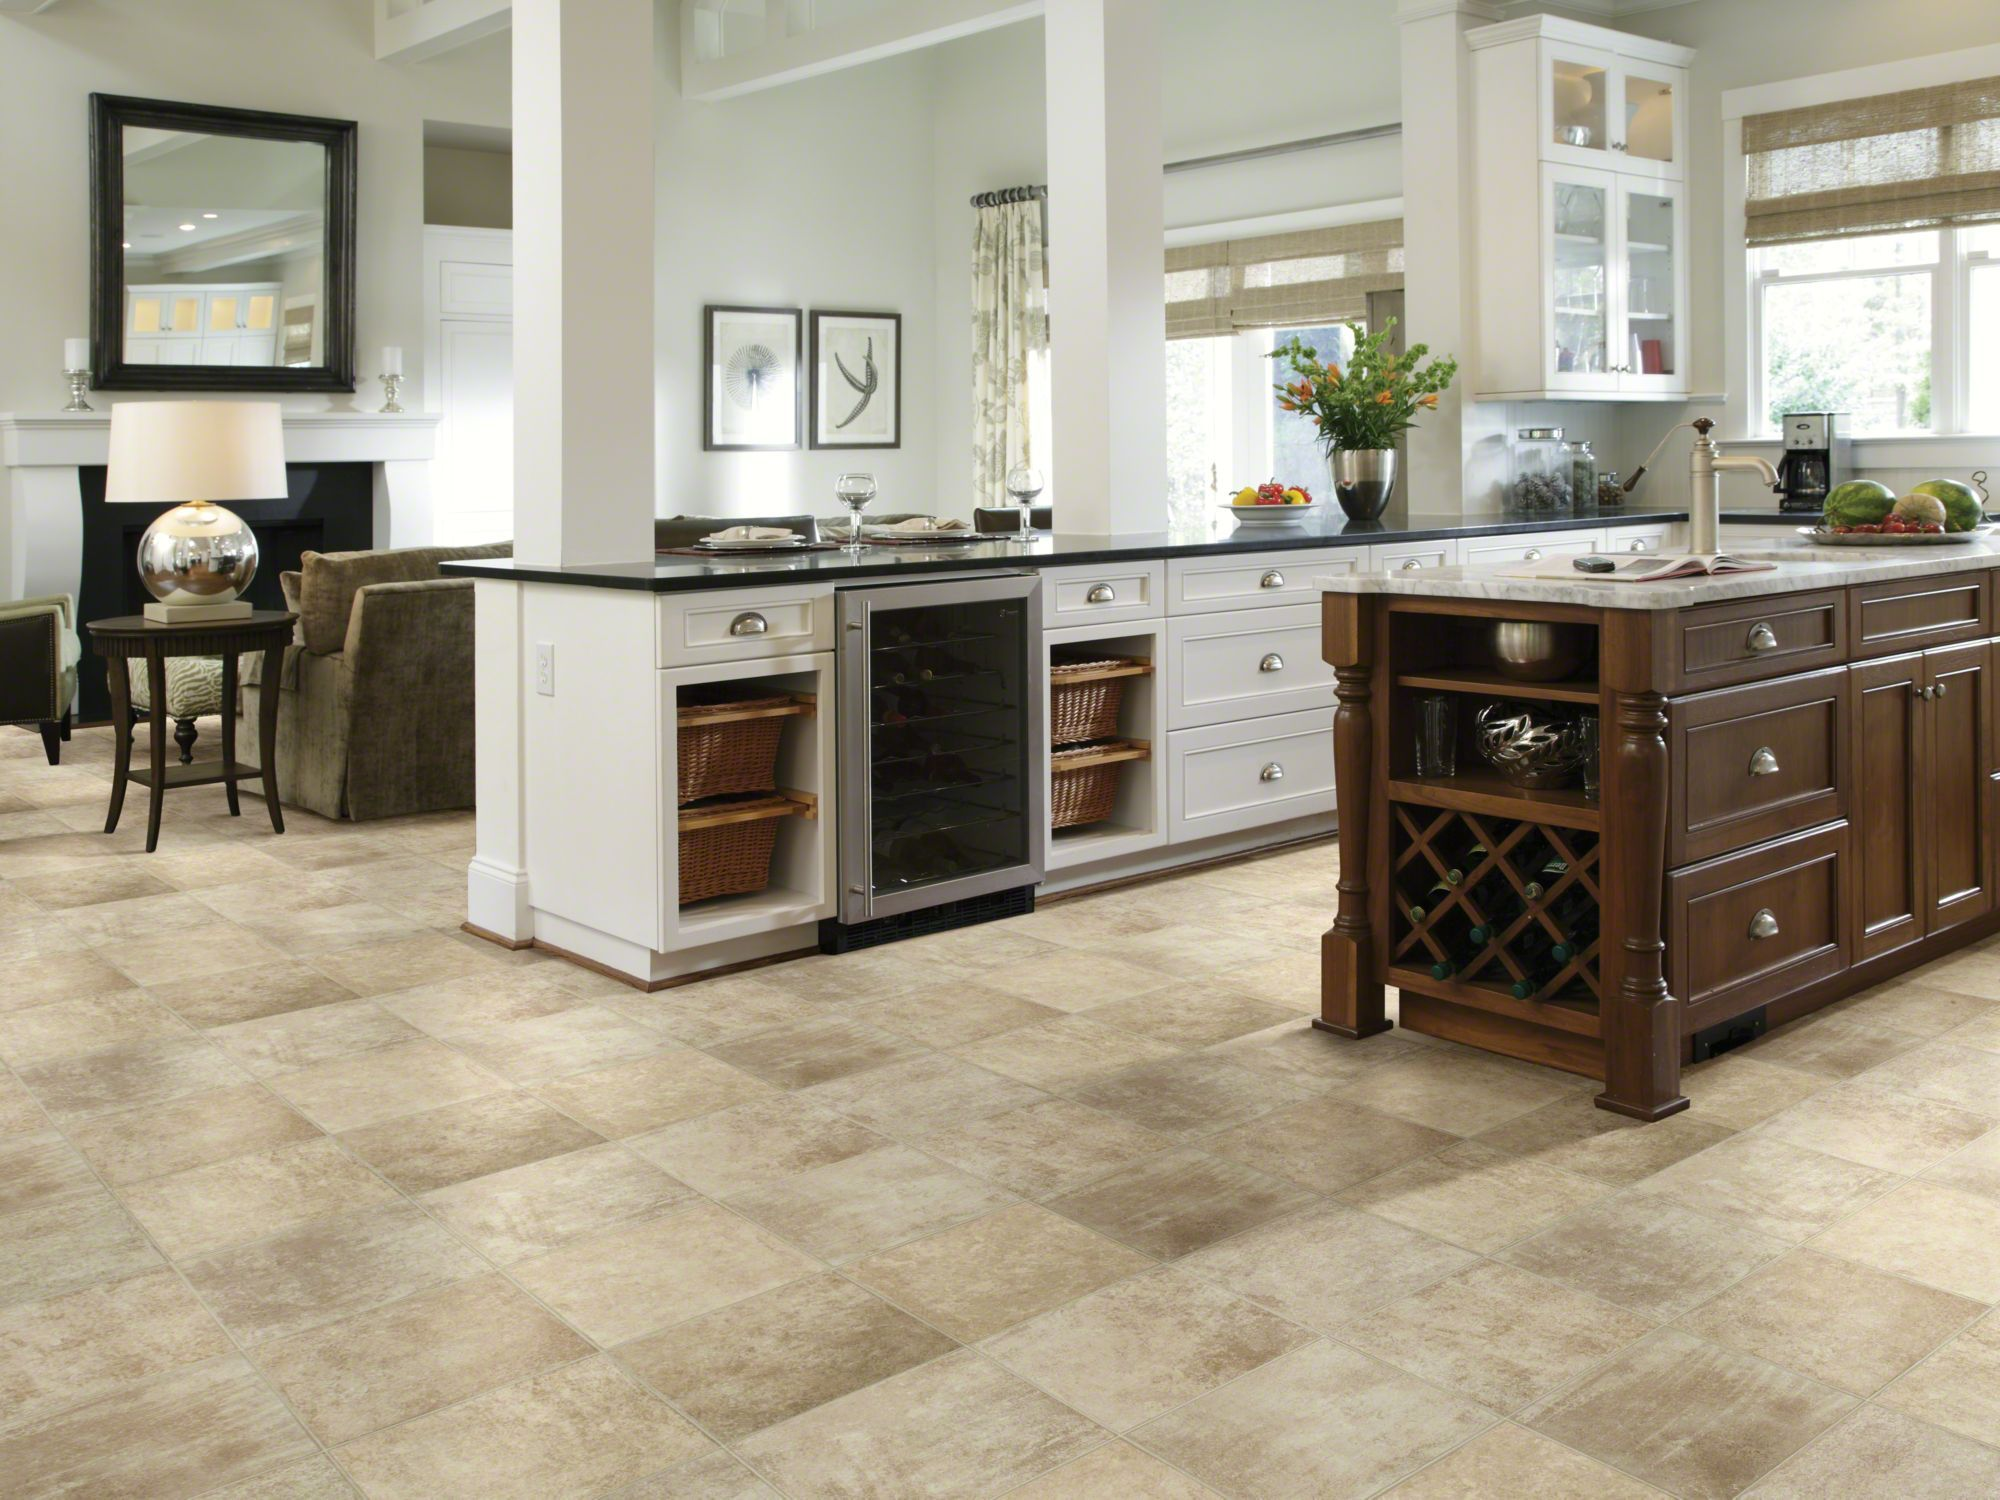 Shaw S Hercules Crete Resilient Vinyl Flooring Is The Modern Choice For Beautiful Durable Floors Wide Variety Of Patterns Colors In Plank